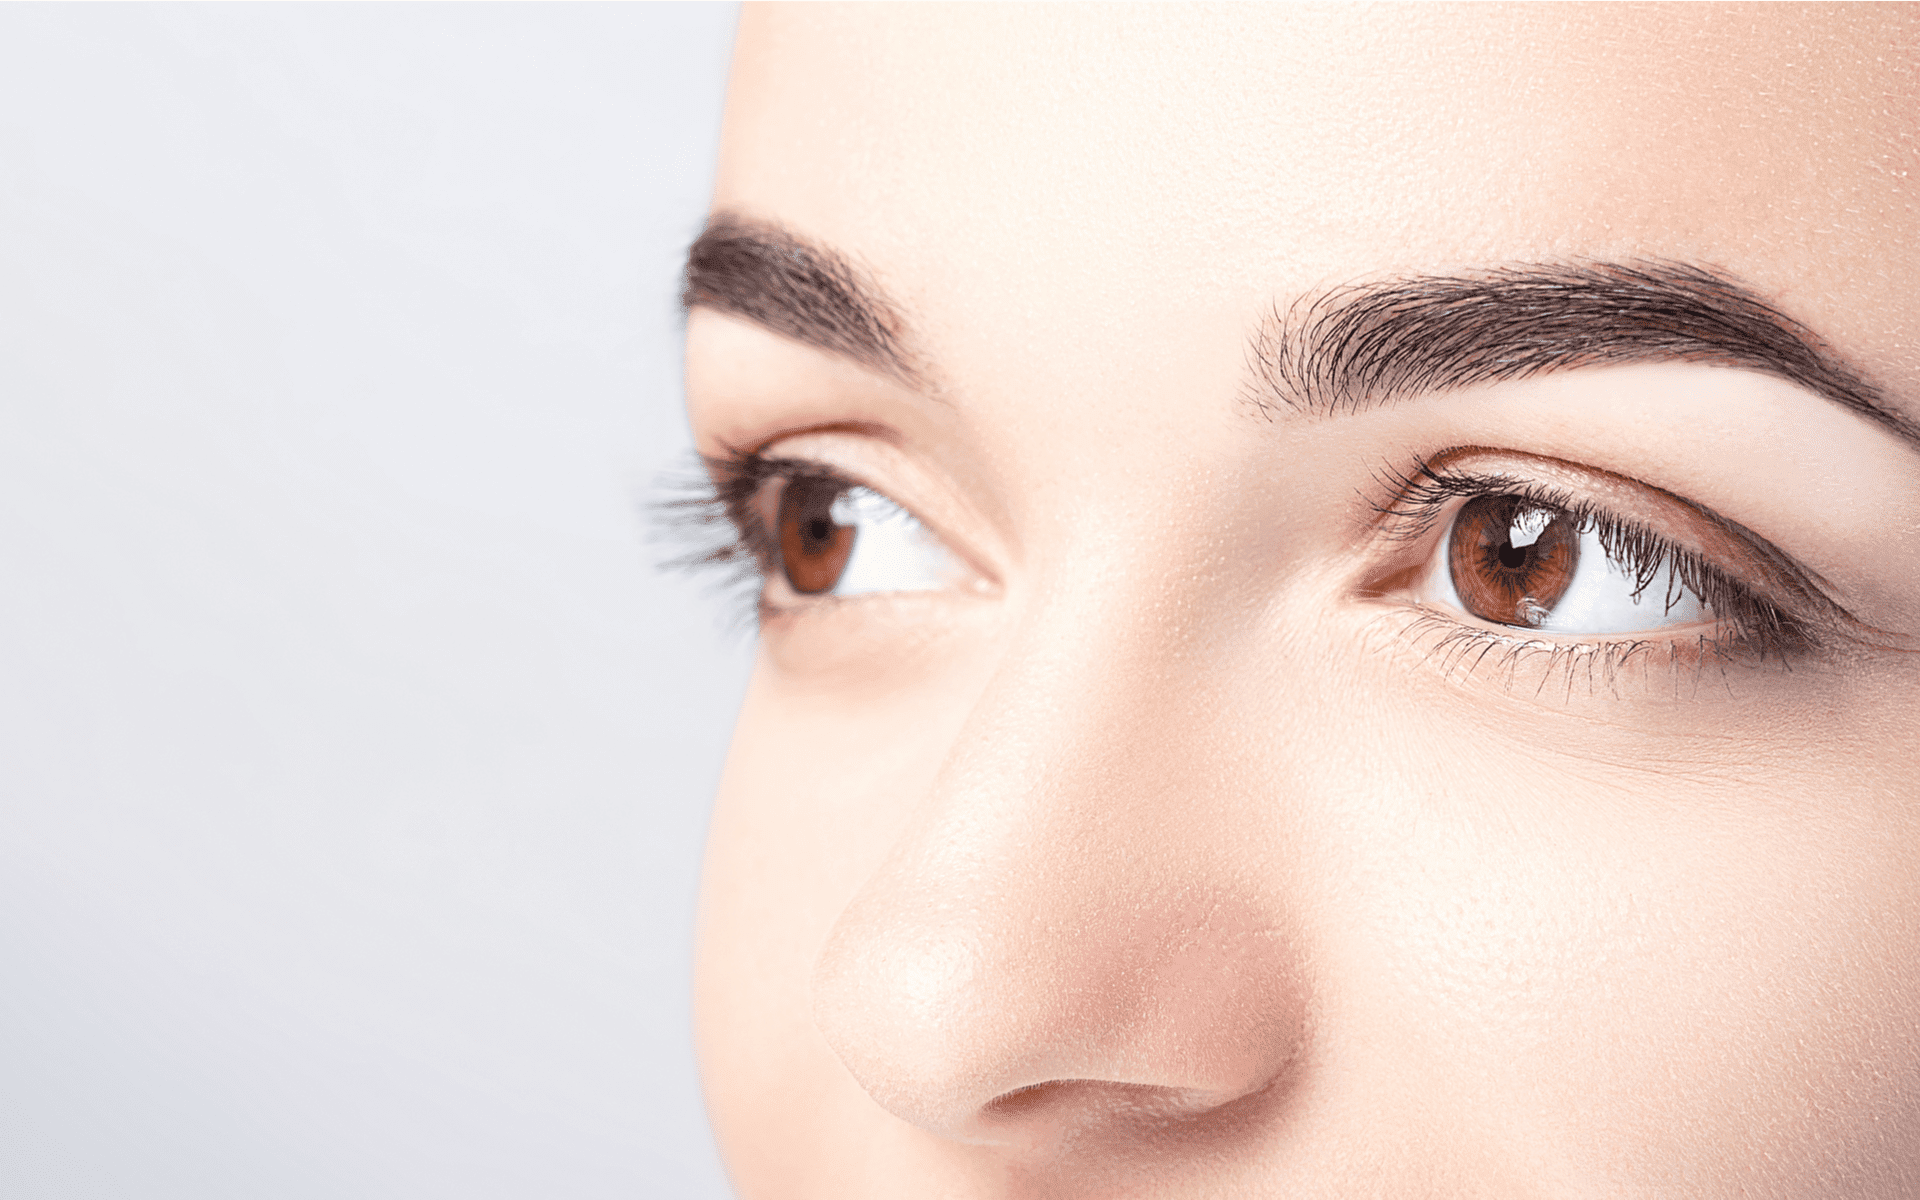 lady with microblading services